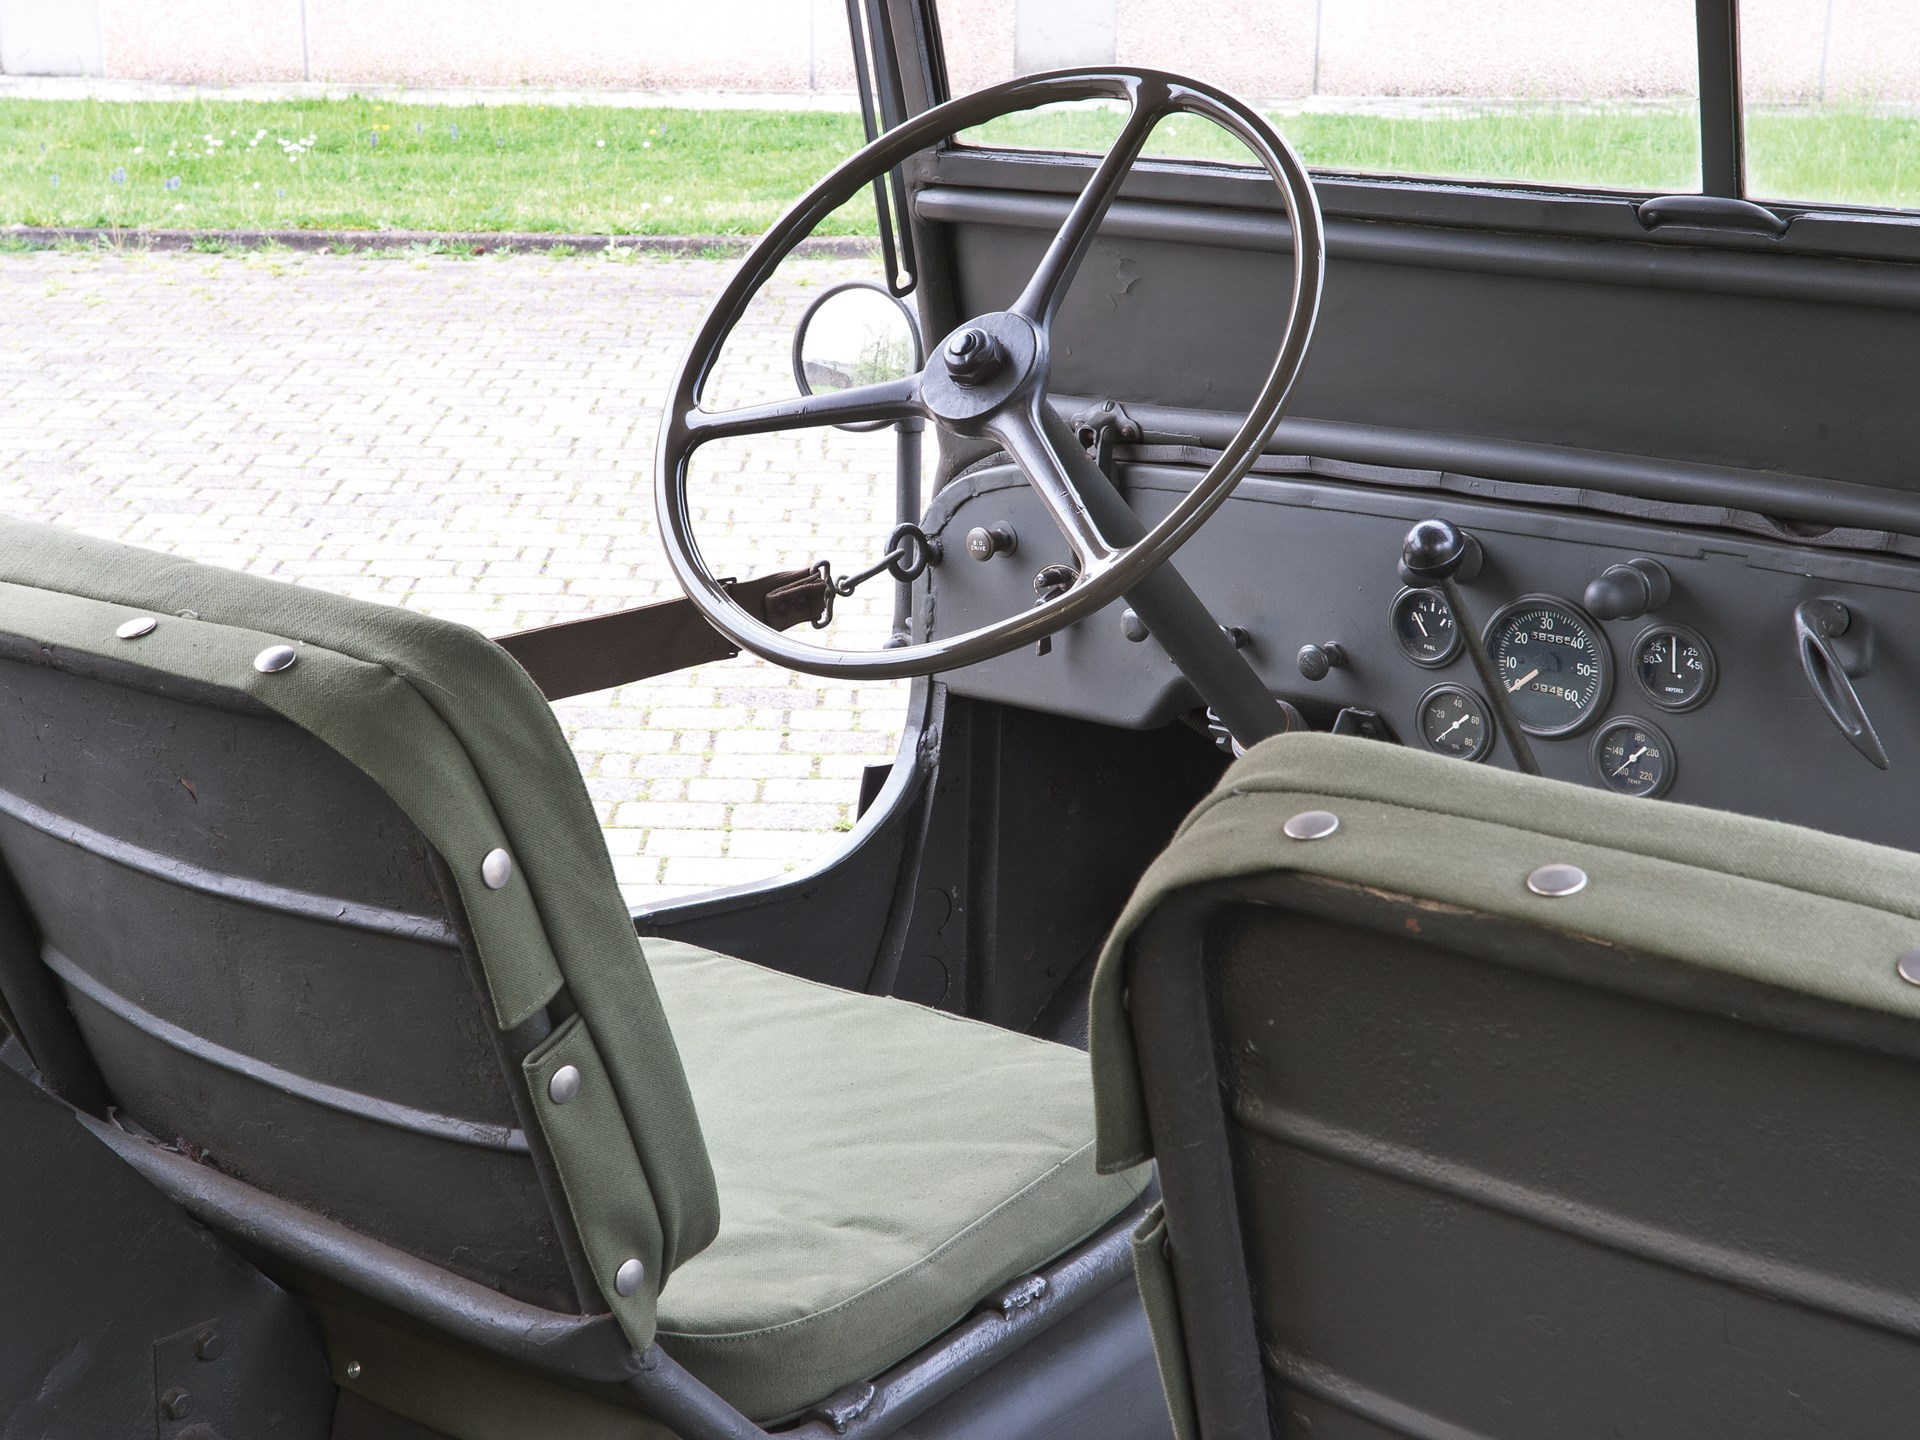 Rm Sothebys 1942 Ford Gpw Military Jeep Monaco 2016 1951 Cars For Sale